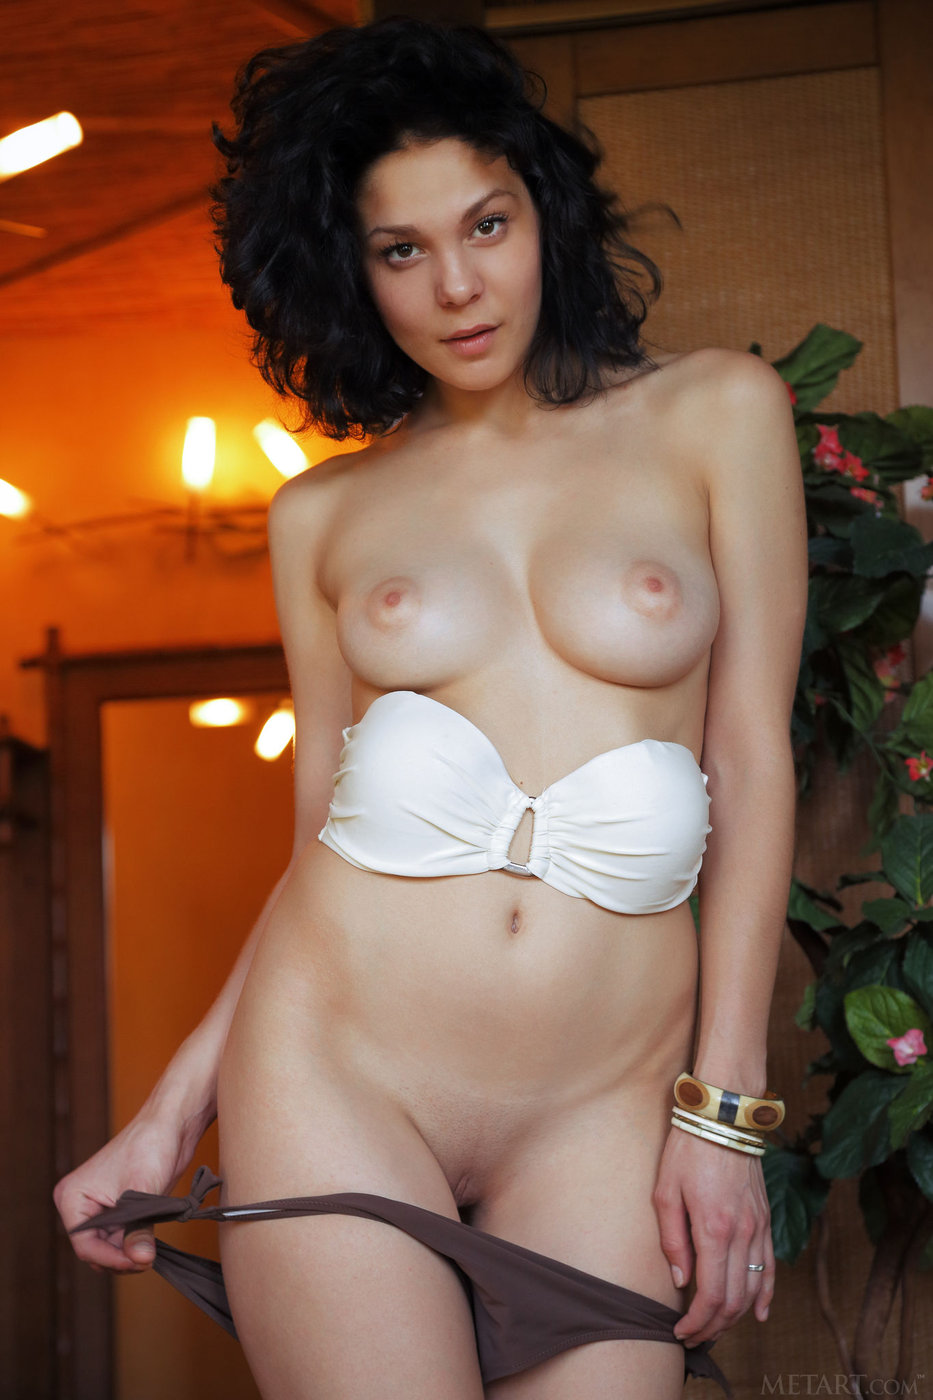 Nude short hair brunette